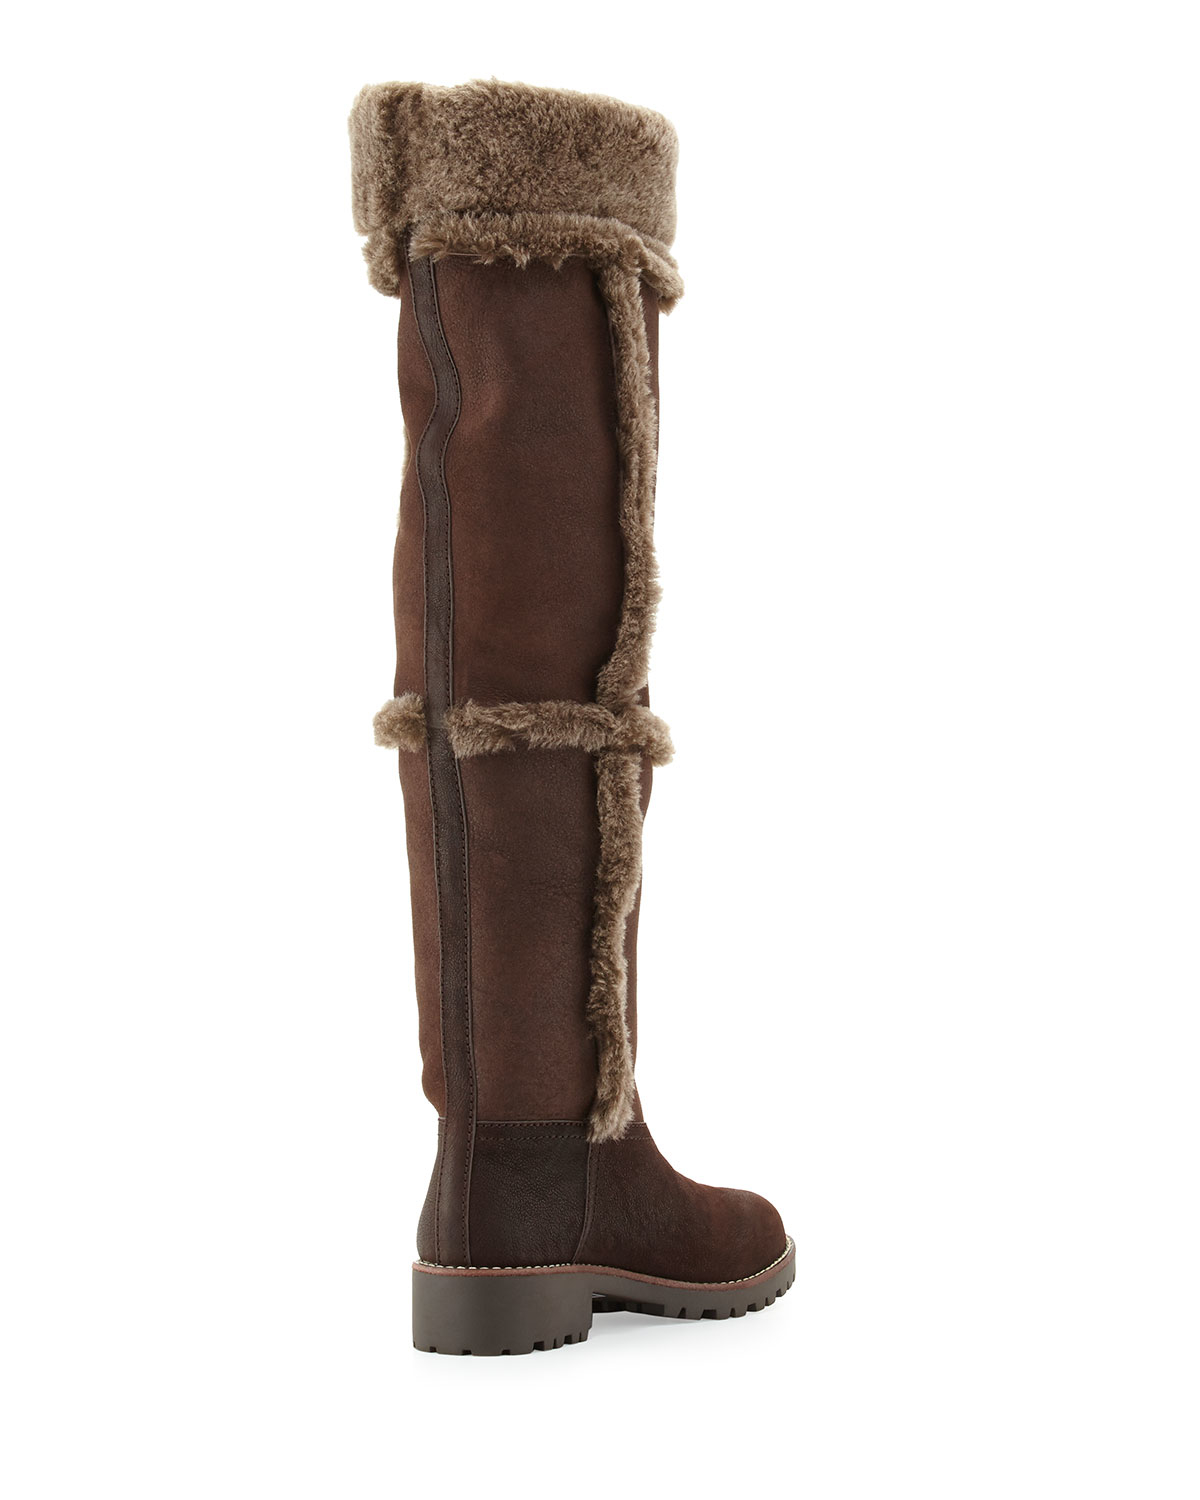 5012a1d4a Lyst - Tory Burch Talouse Shearling Tall Boot in Brown